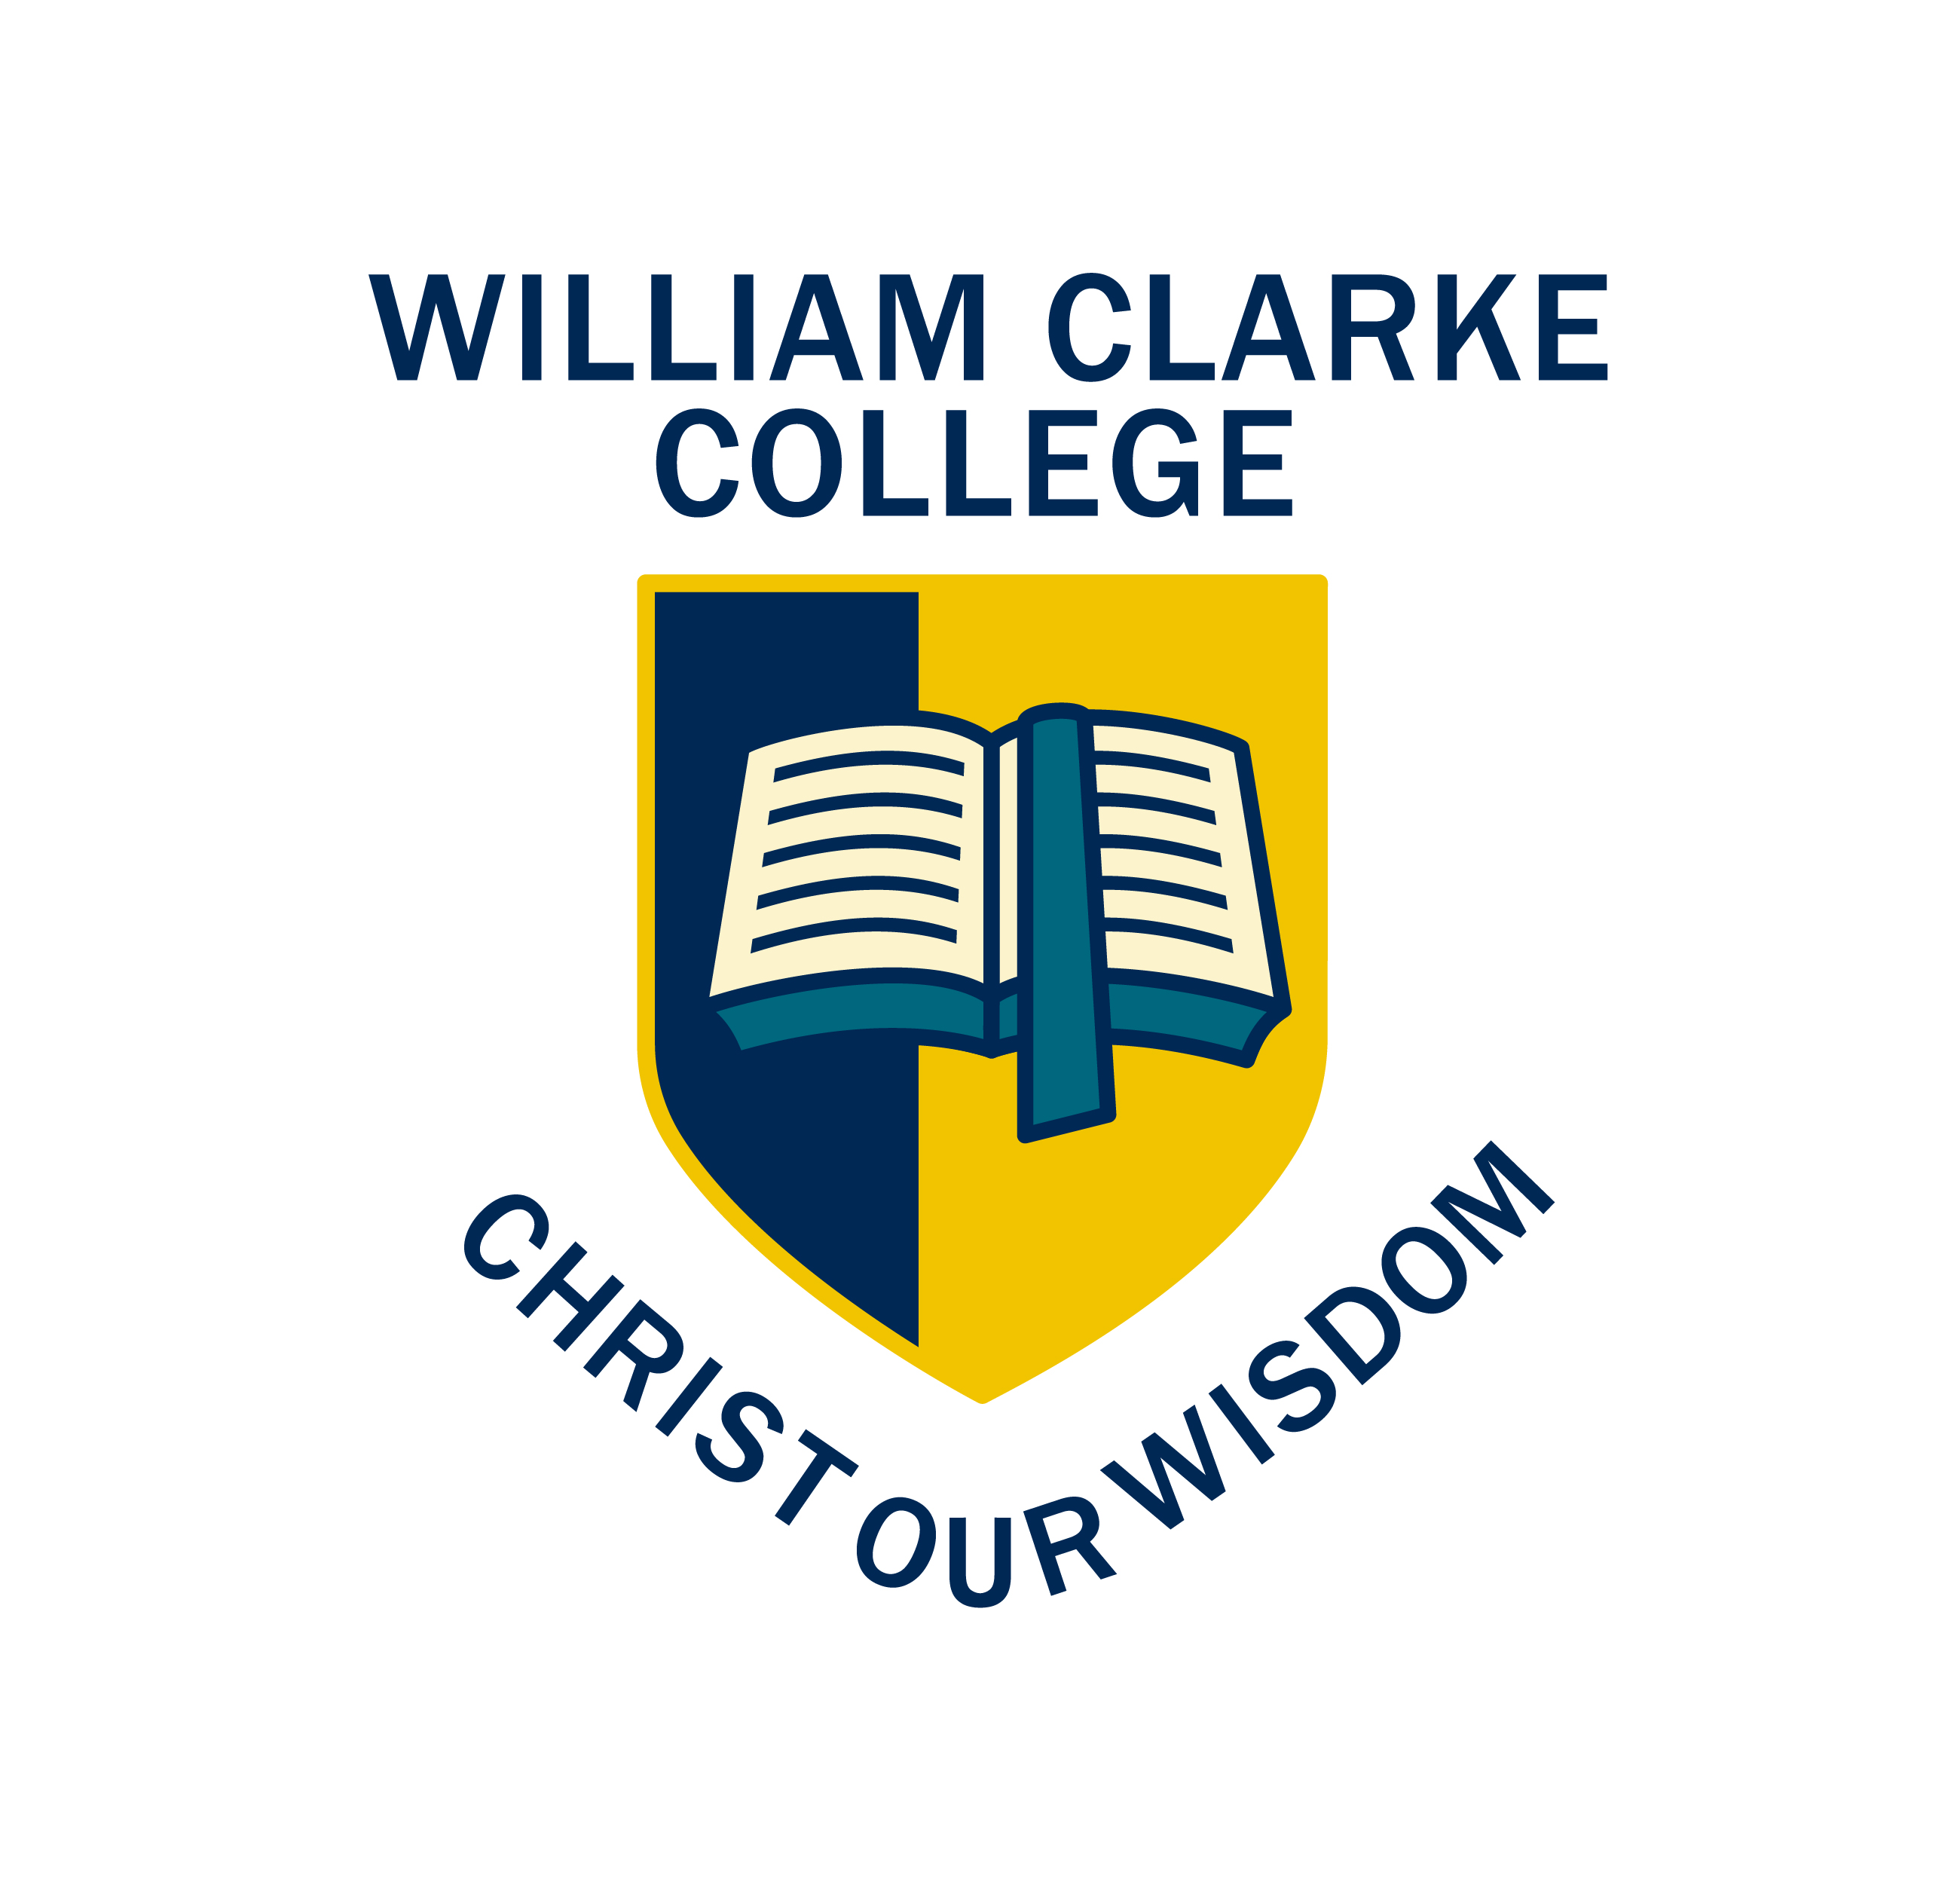 William Clarke College